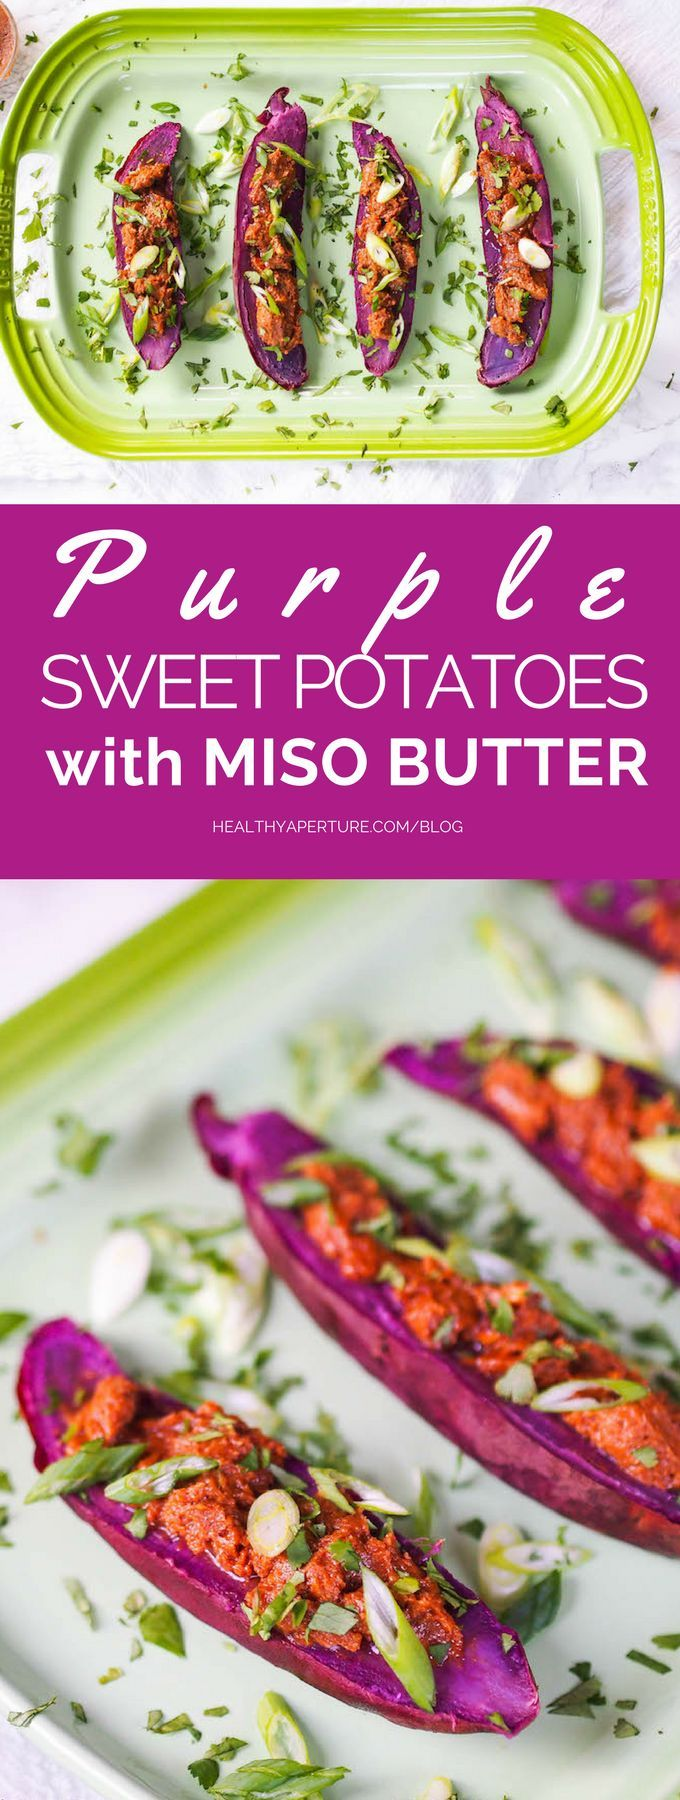 Forget boring old baked potatoes! Make these baked purple sweet potatoes with probiotic rich miso butter!